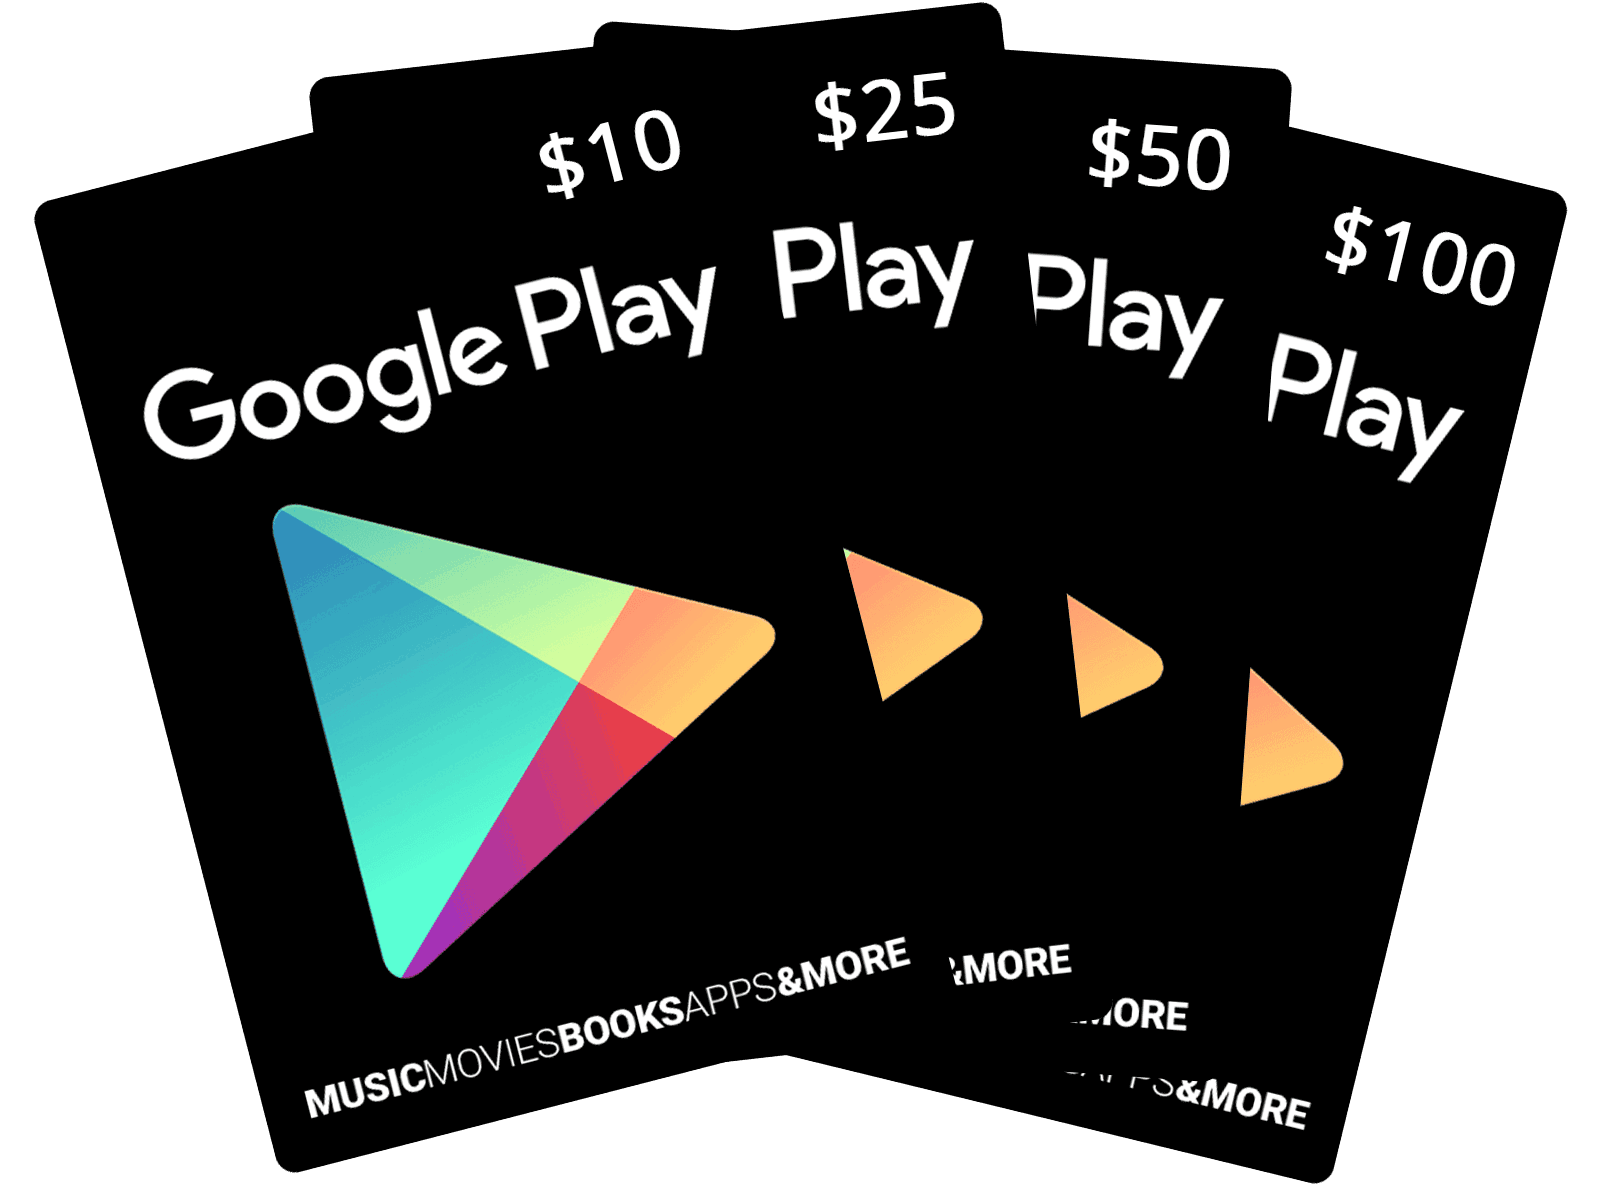 Google Play Card Paysafecard